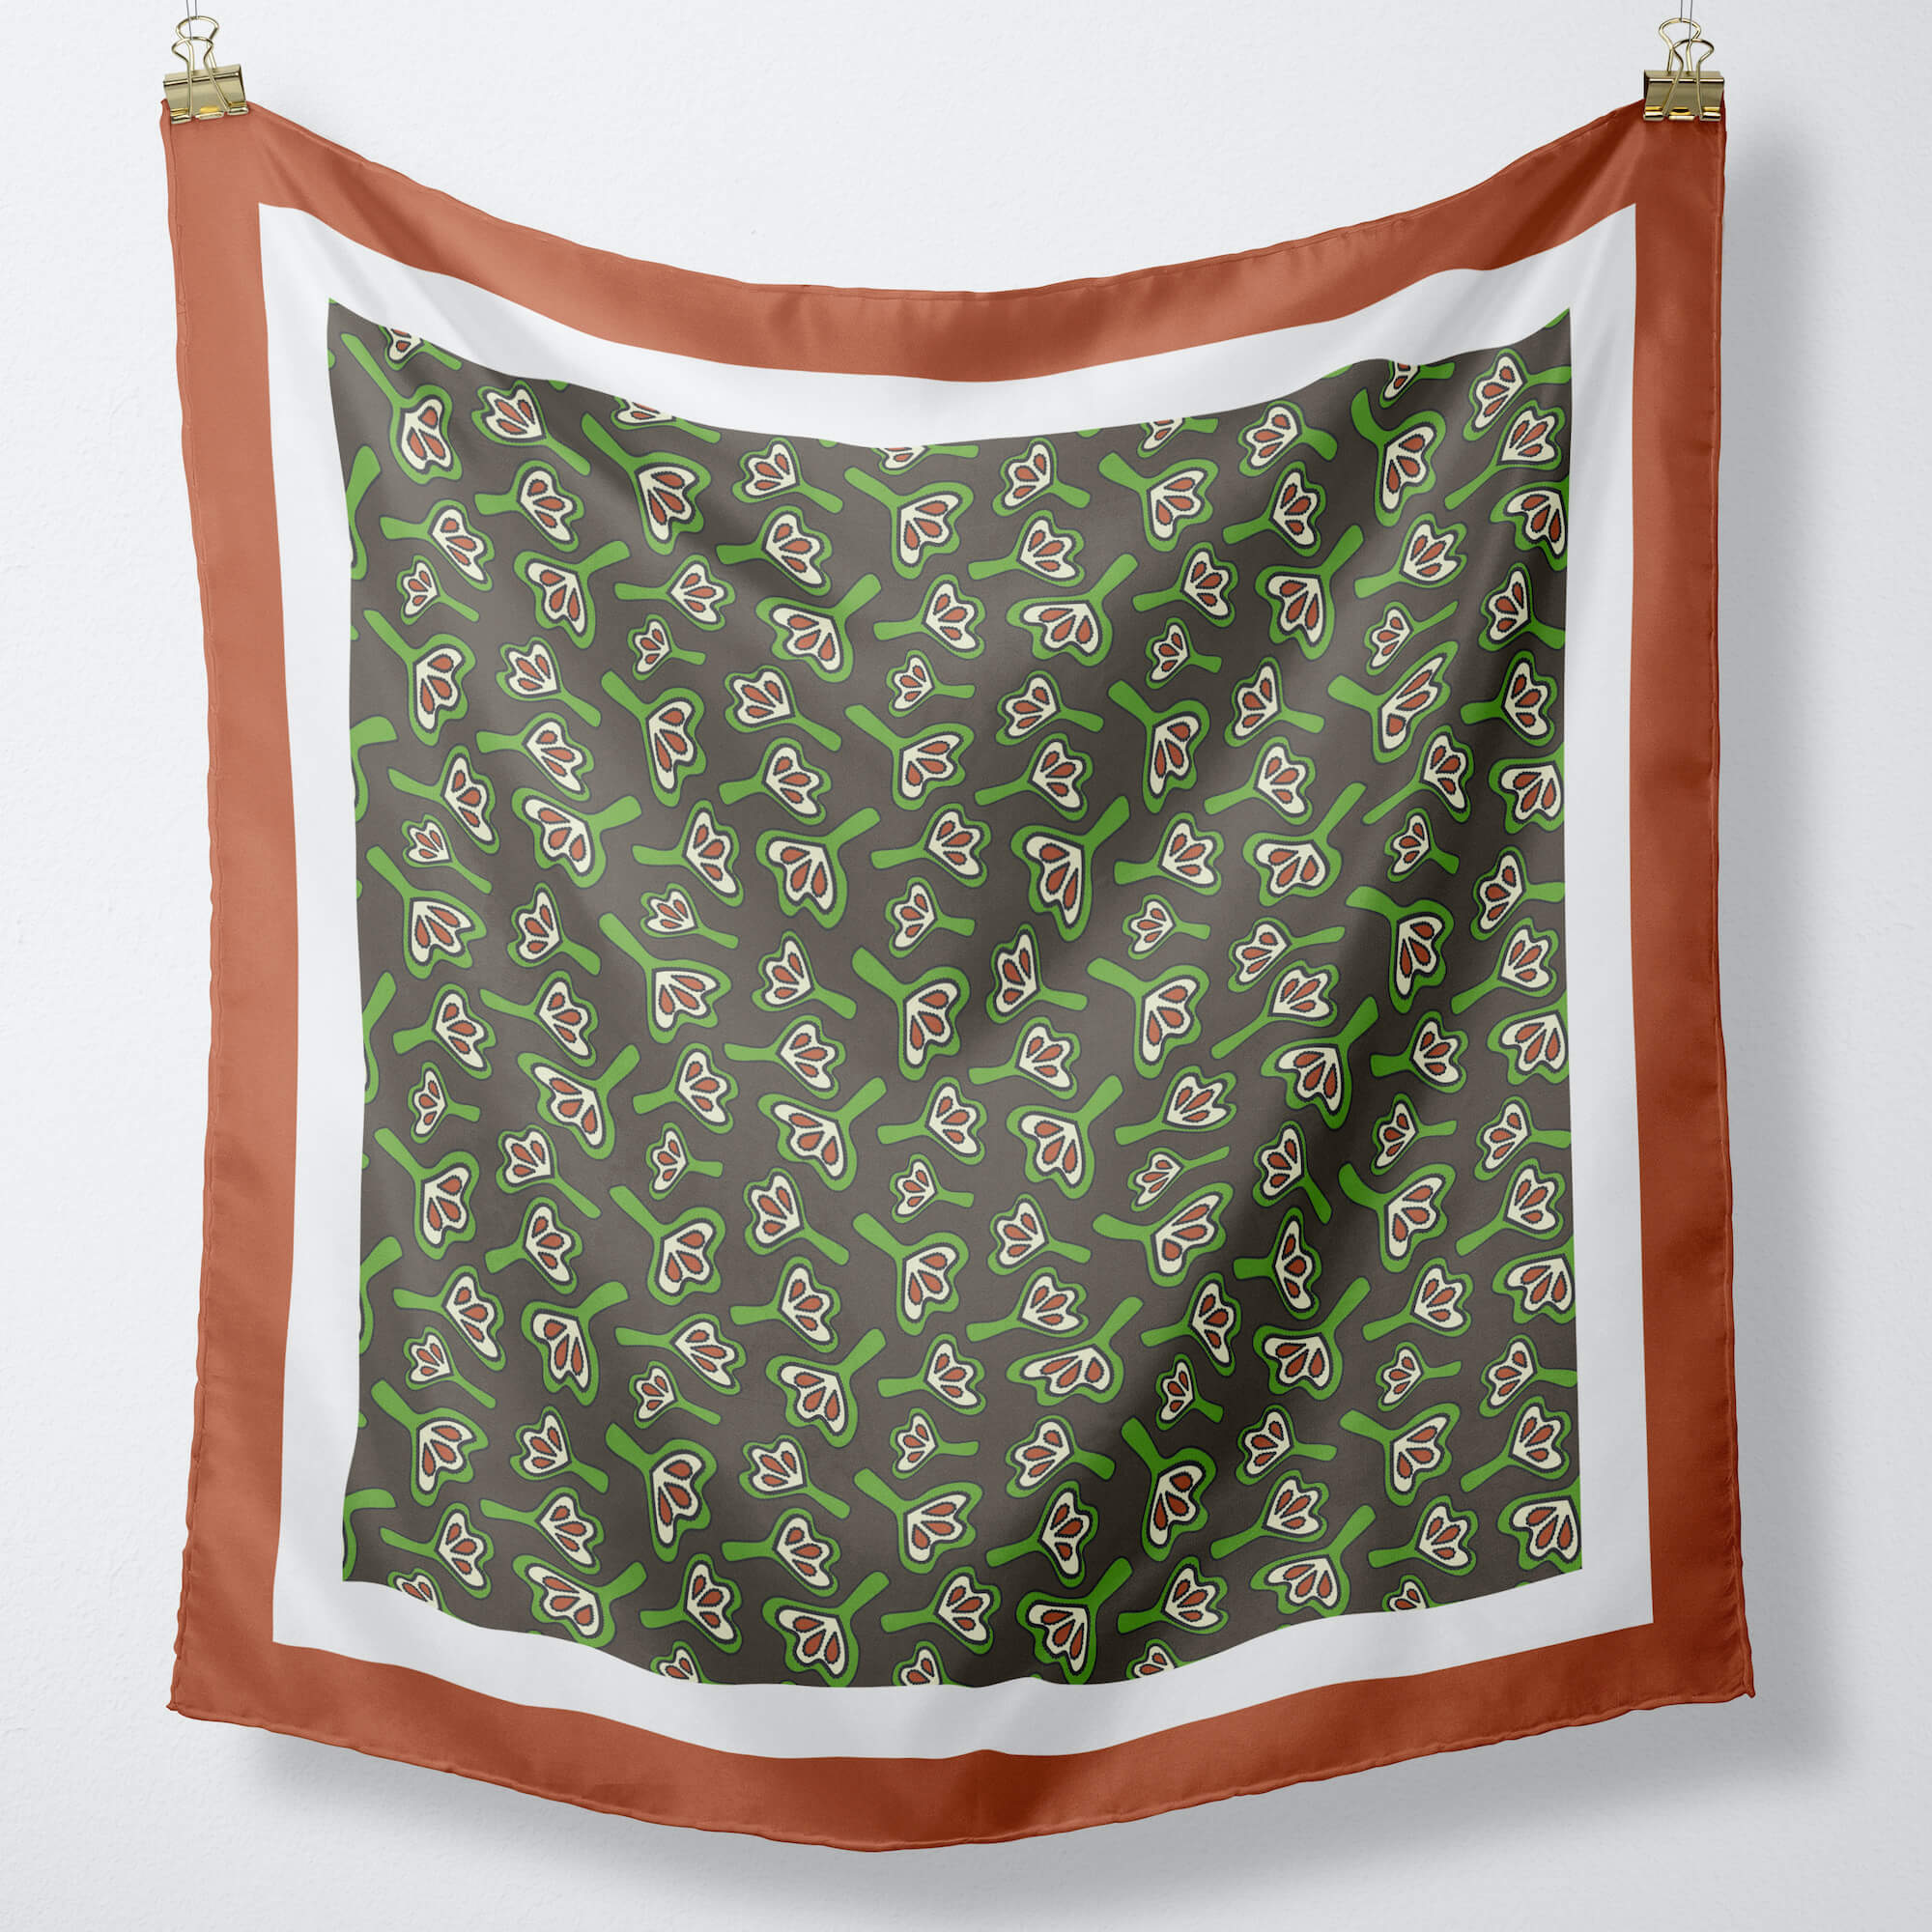 silk-scarf-tanlilies-square